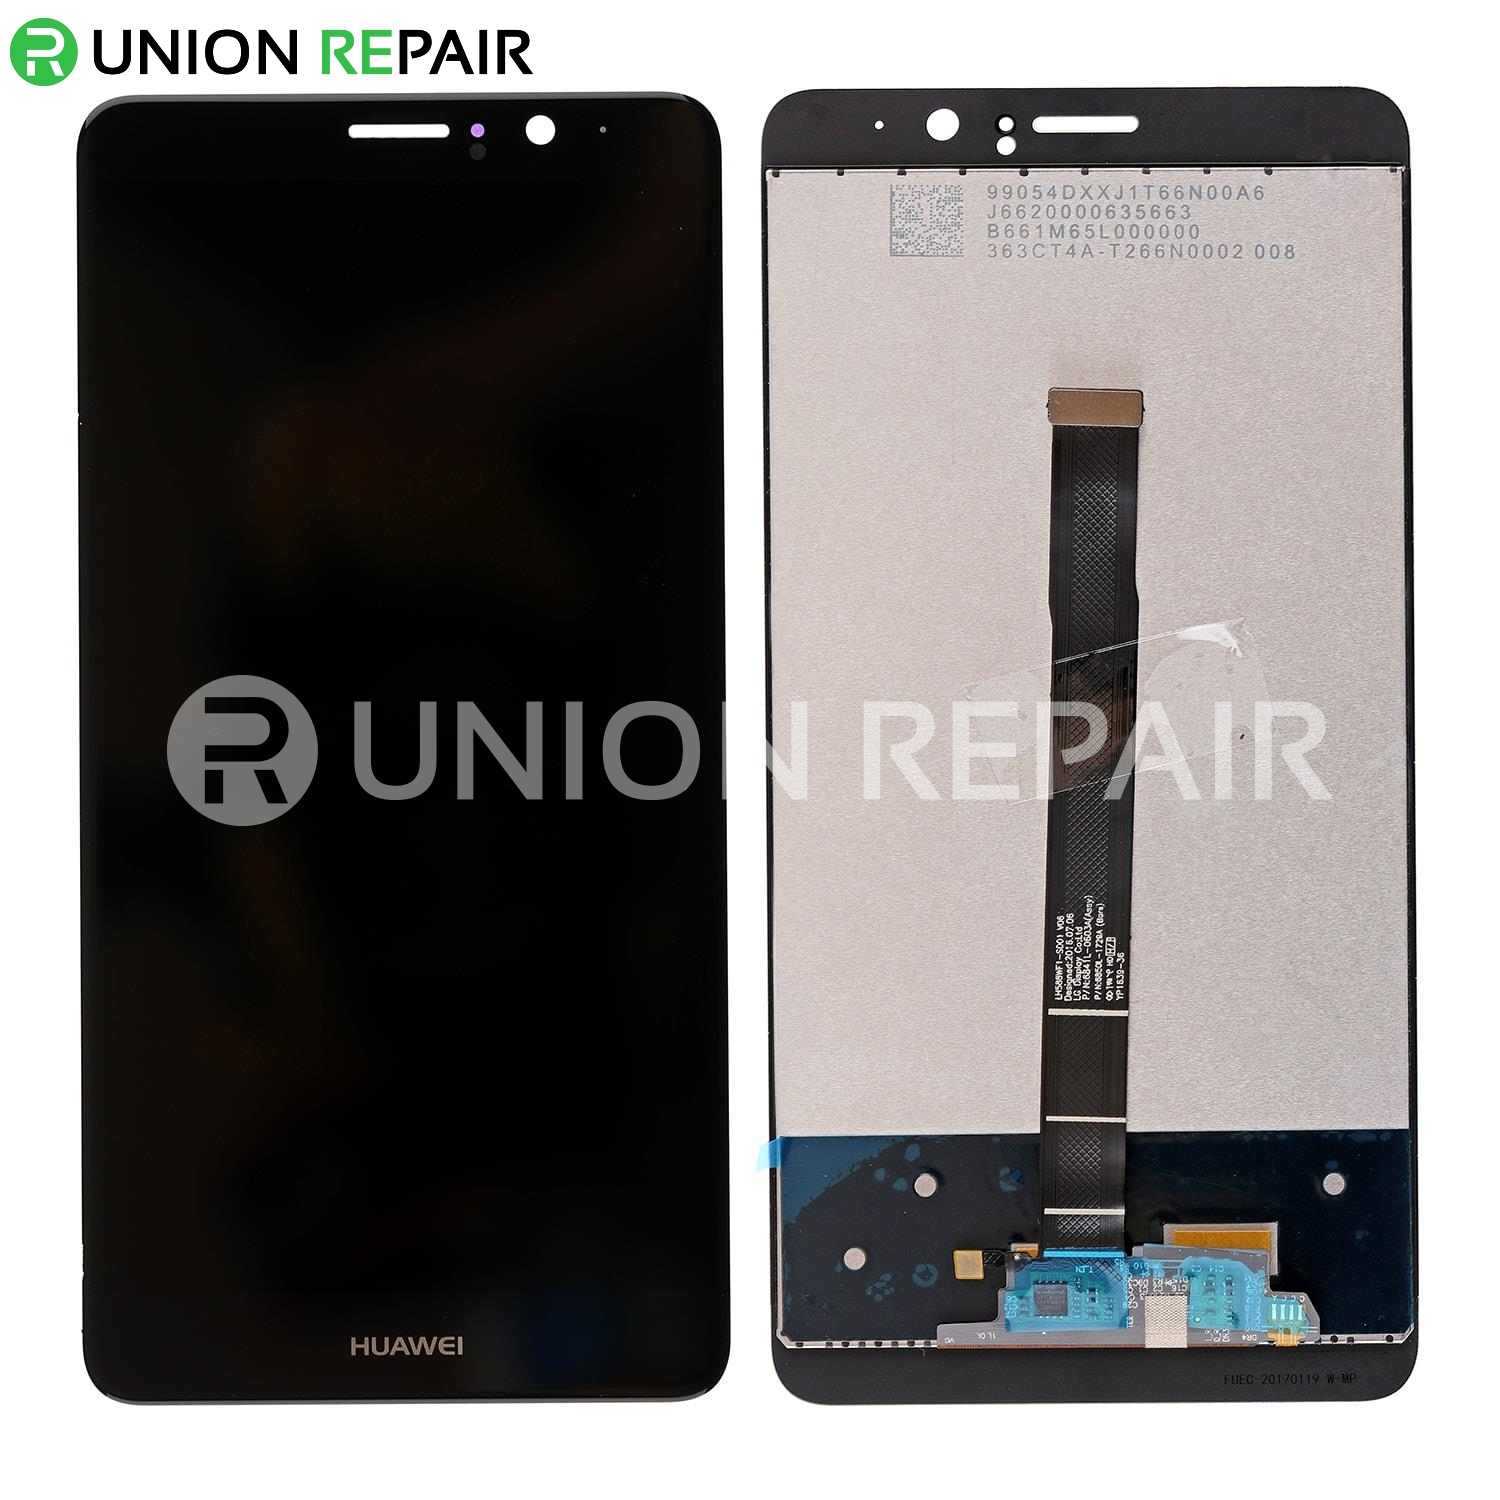 Replacement for Huawei Mate 9 LCD with Digitizer Assembly - Black